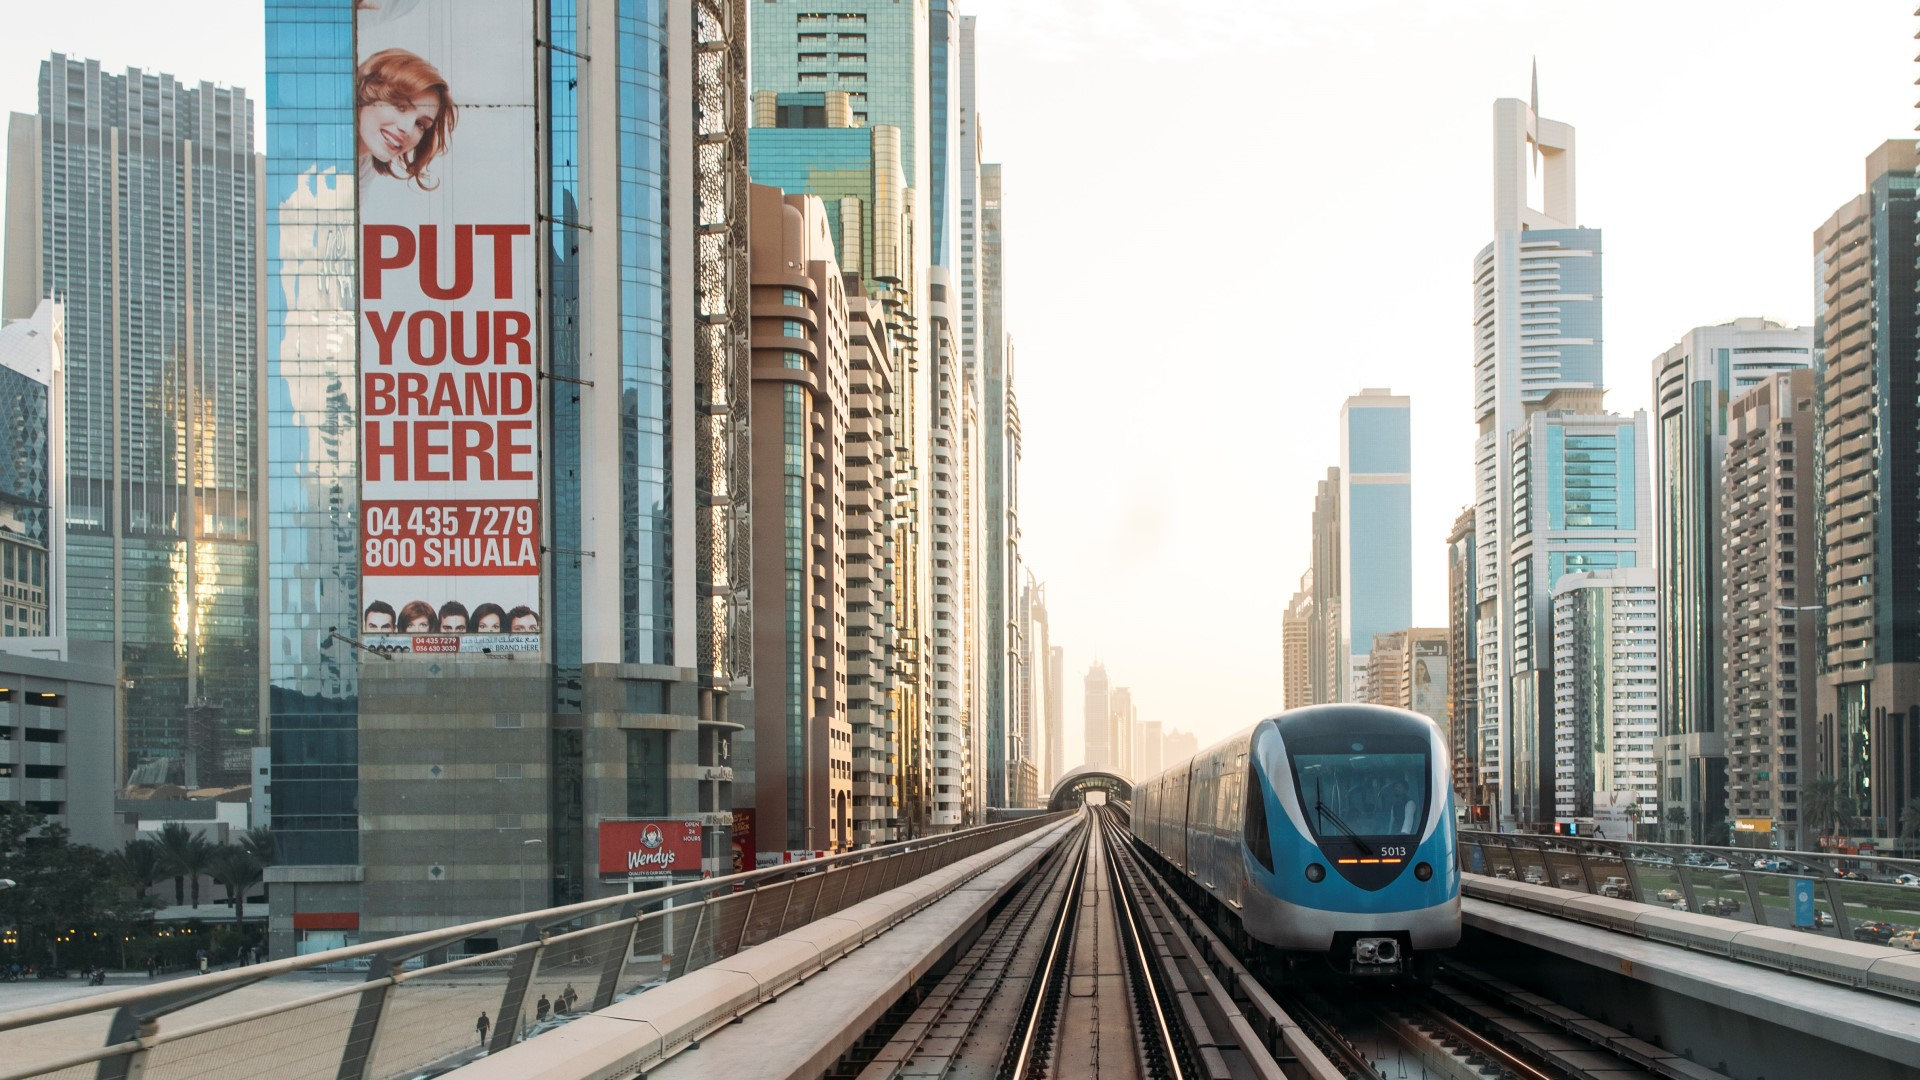 Dubai is one of the destinations for metro trains produced in Poland by Alstom